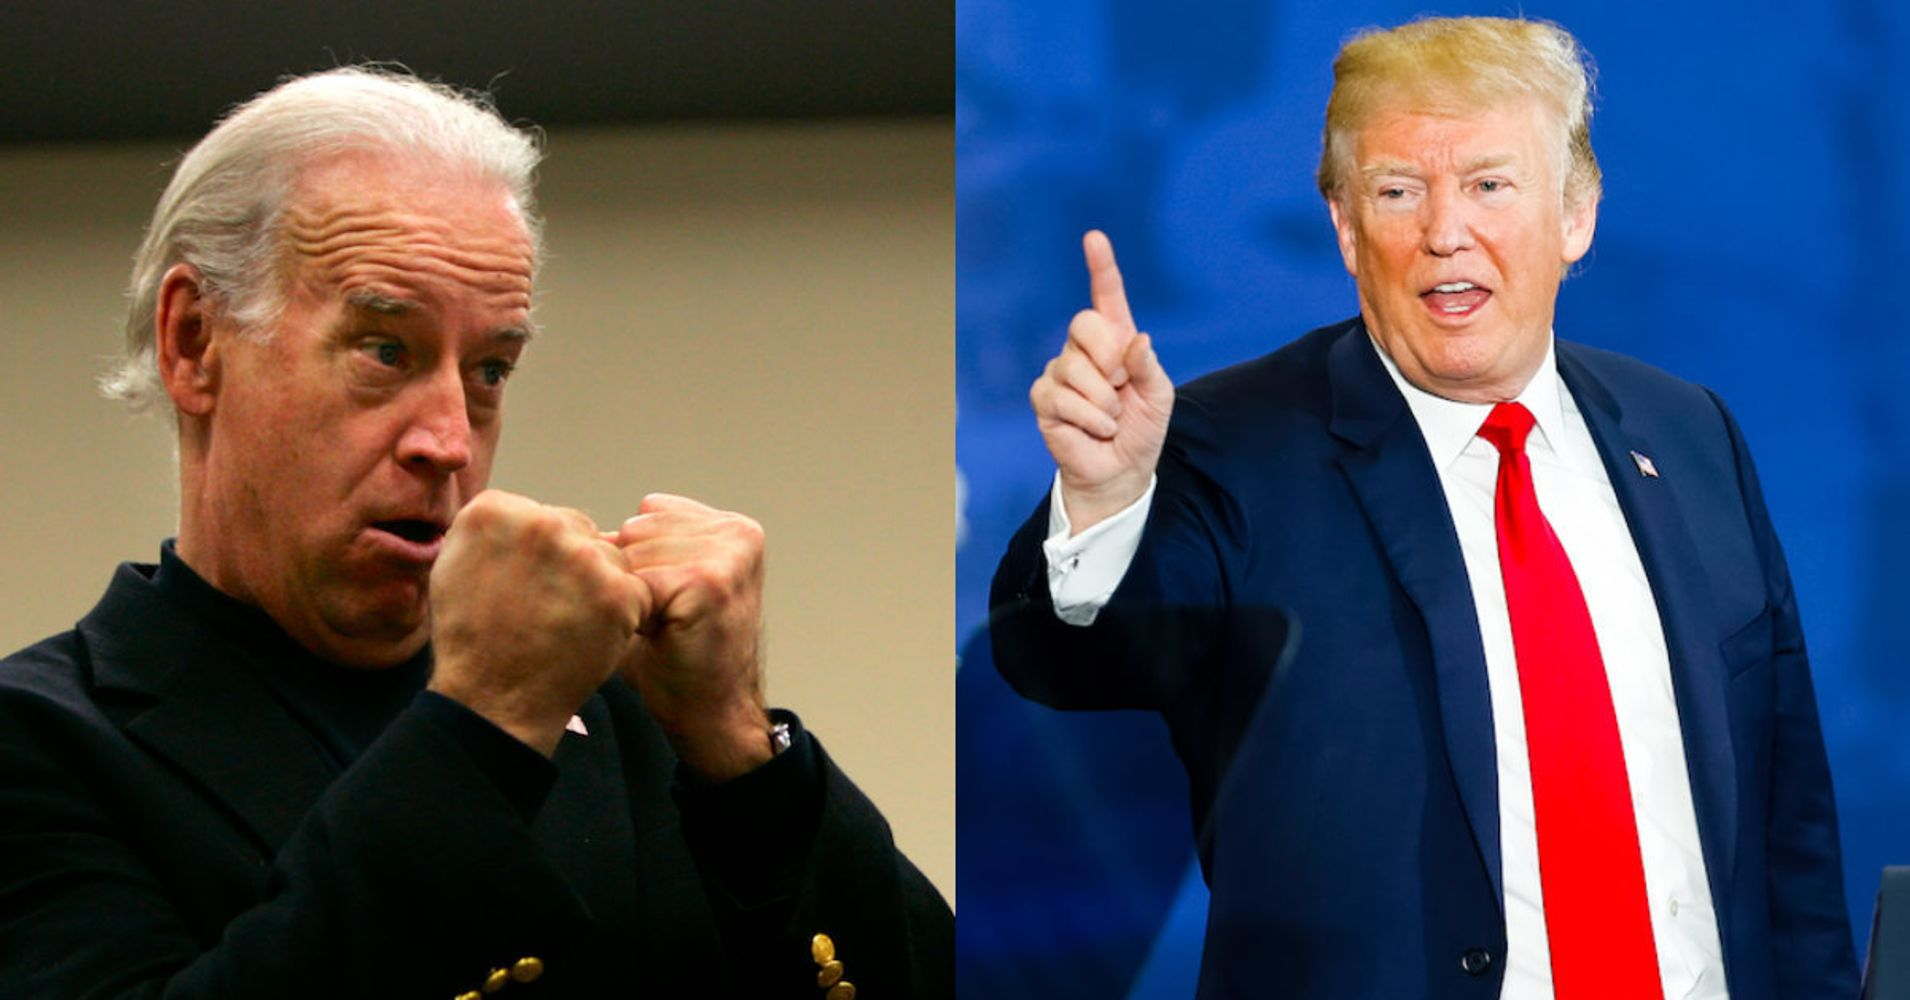 The Irony Of Joe Biden Trying To Protect Women By Threatening Donald Trump